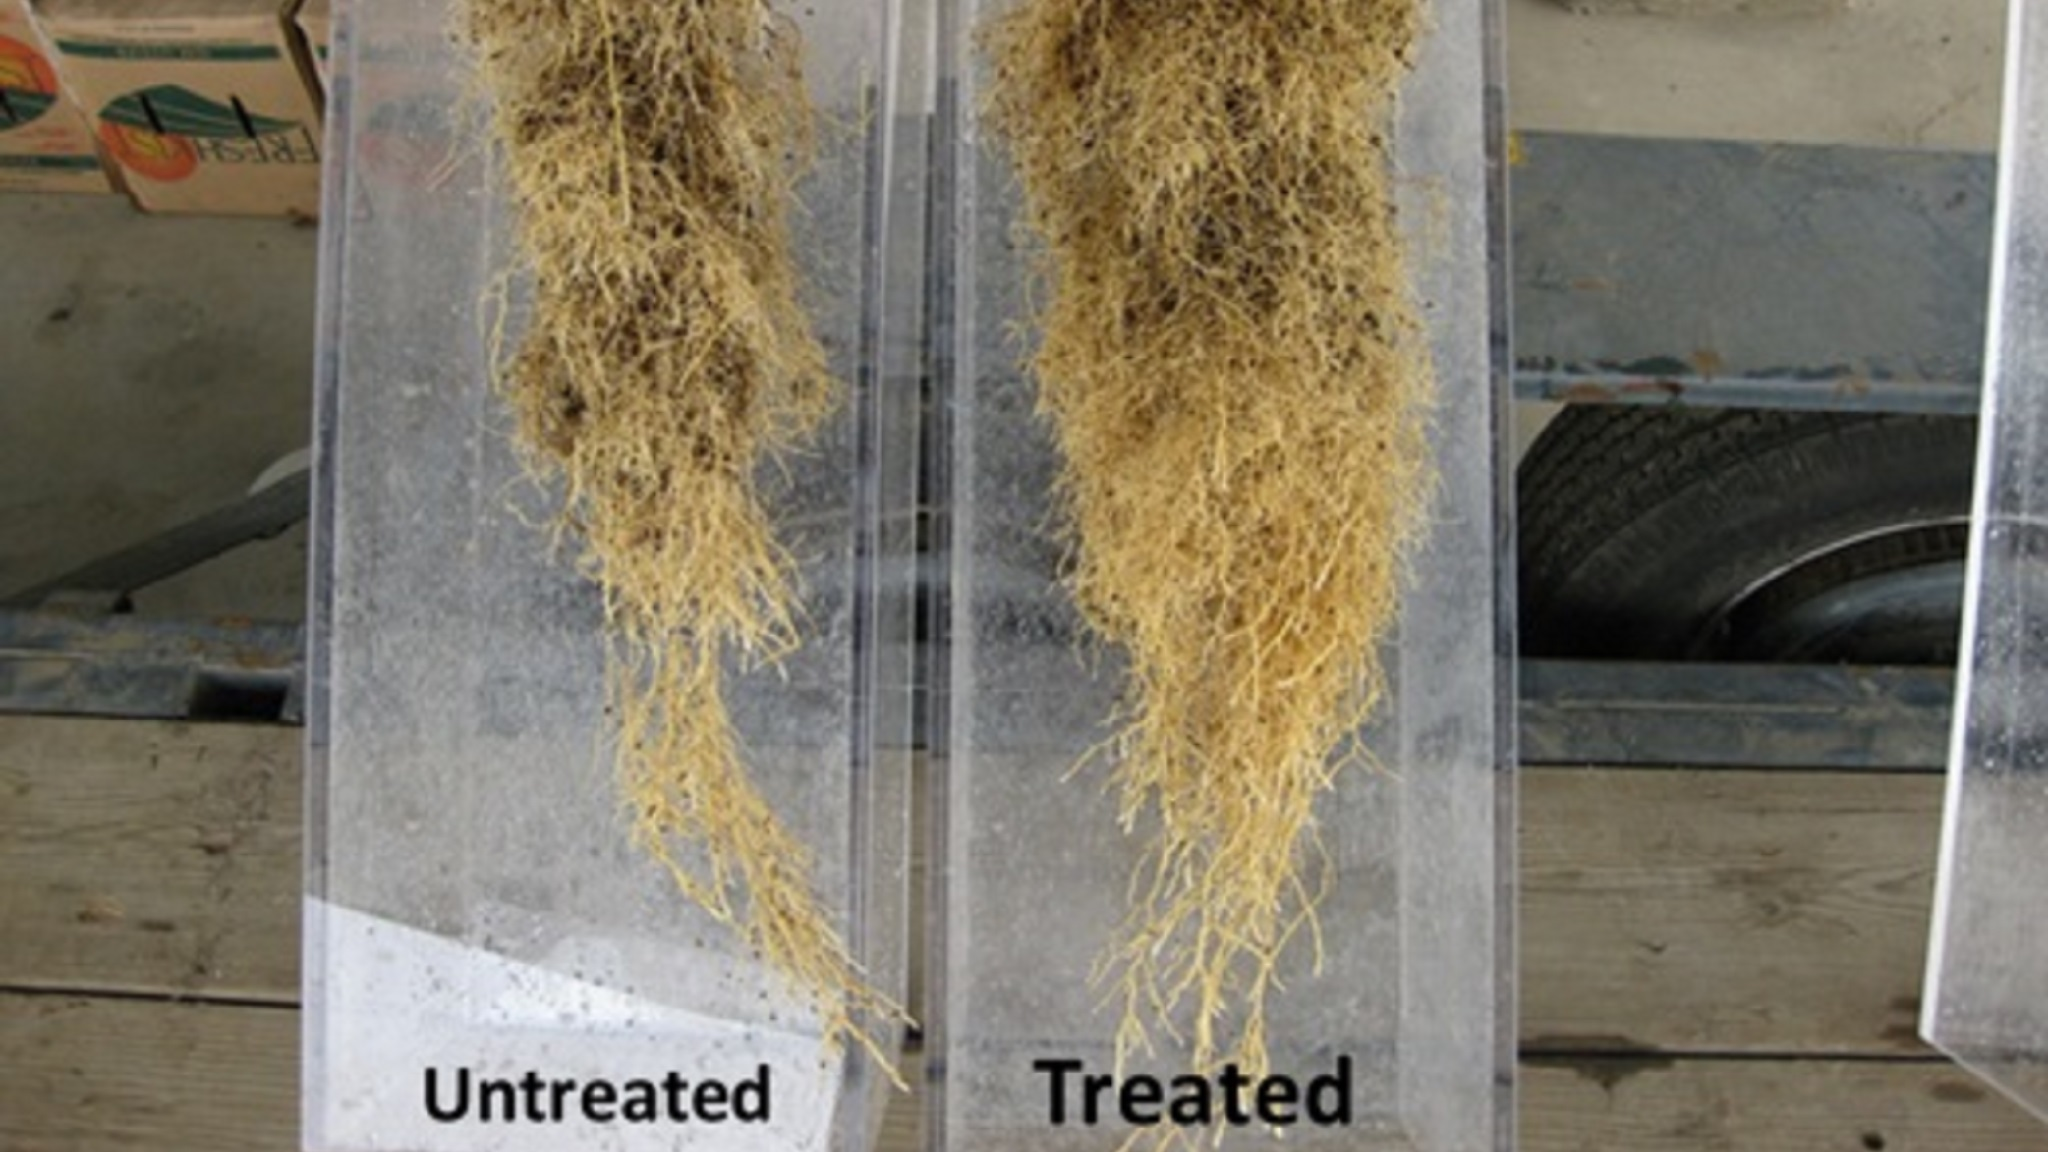 Phytopthora can reduce citrus root mass as displayed in the untreated root mass on the left.